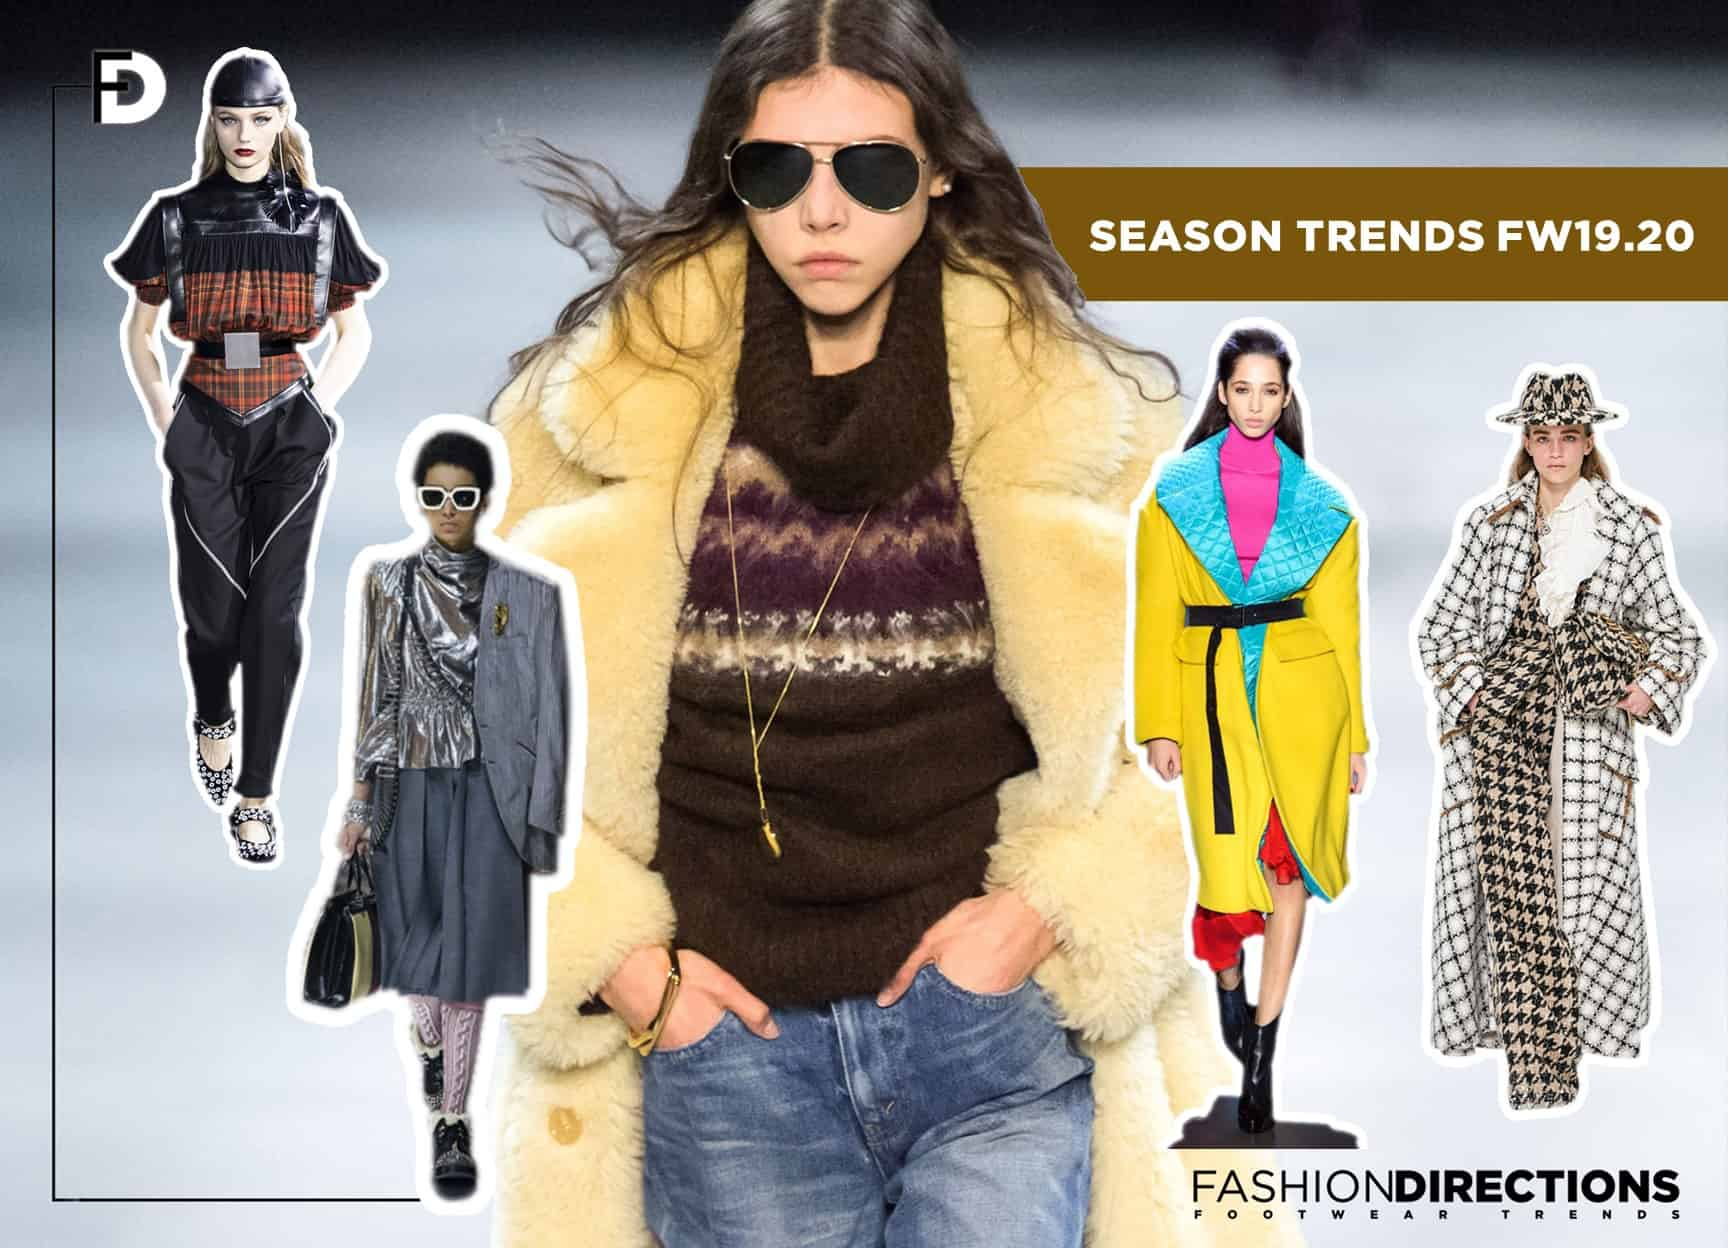 season Trends FW19.20